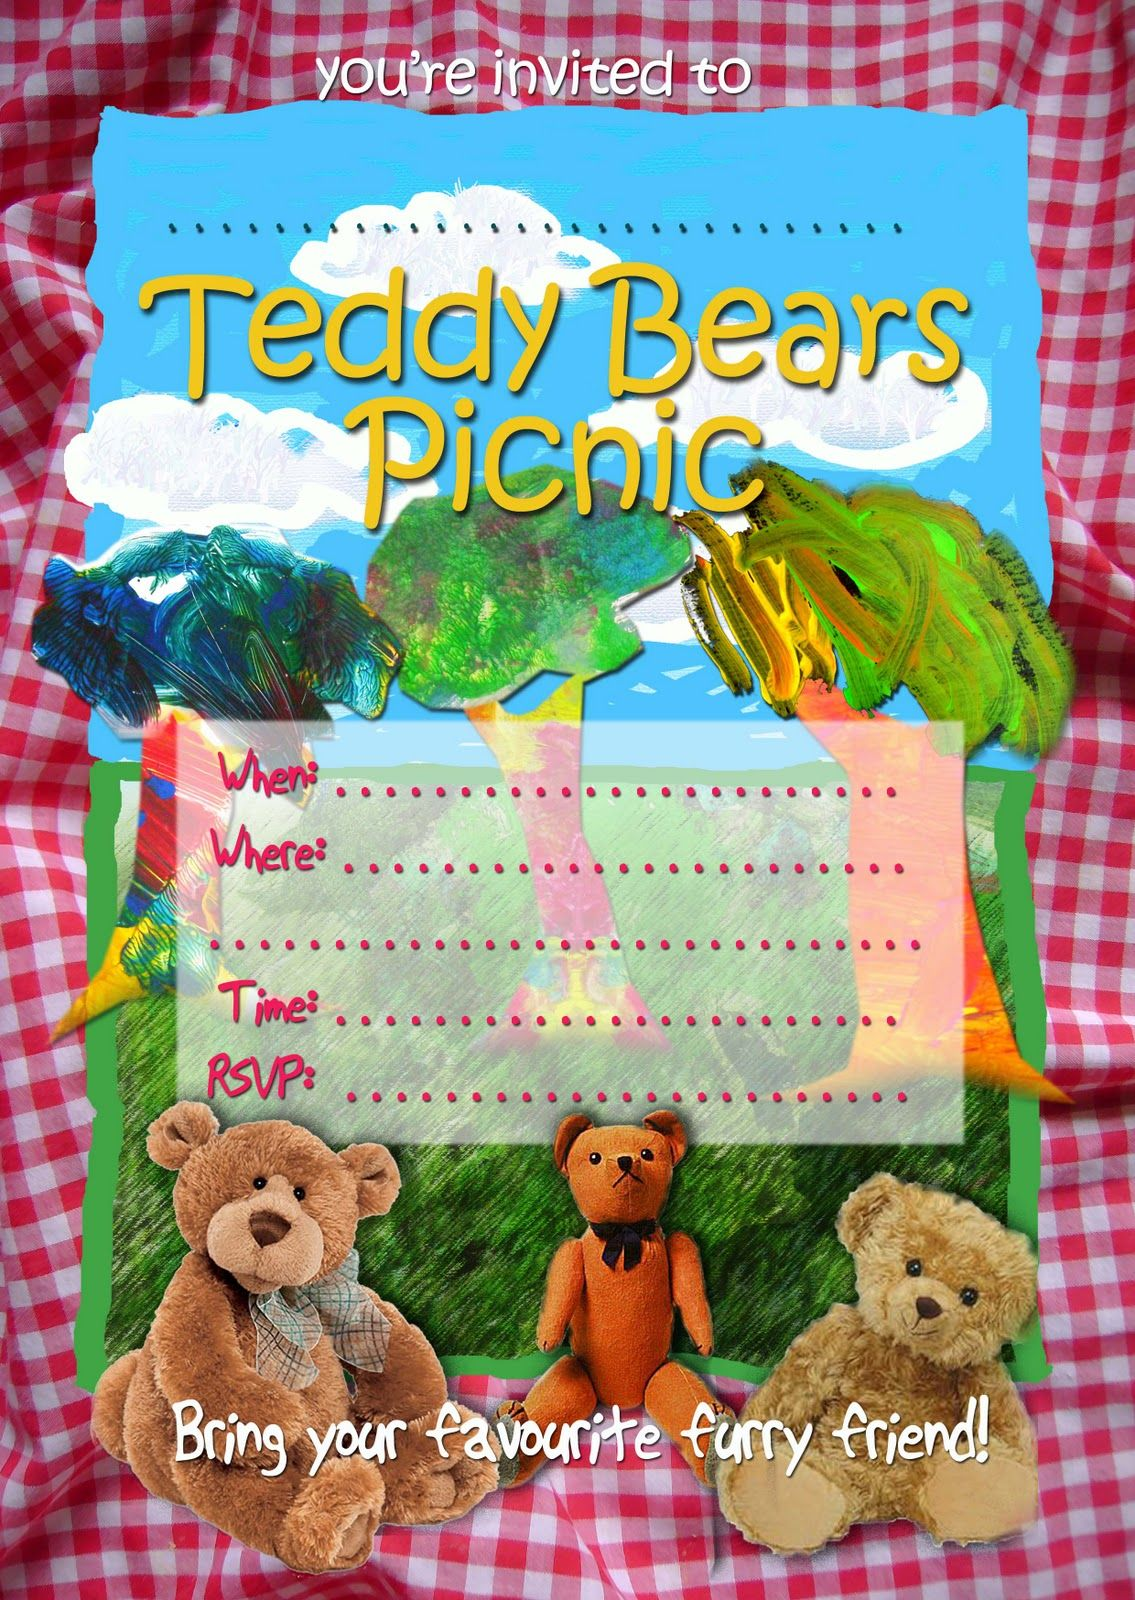 FREE Kids Party Invitations Teddy Bears Picnic Invitation – Teddy Bears Picnic Party Invitations